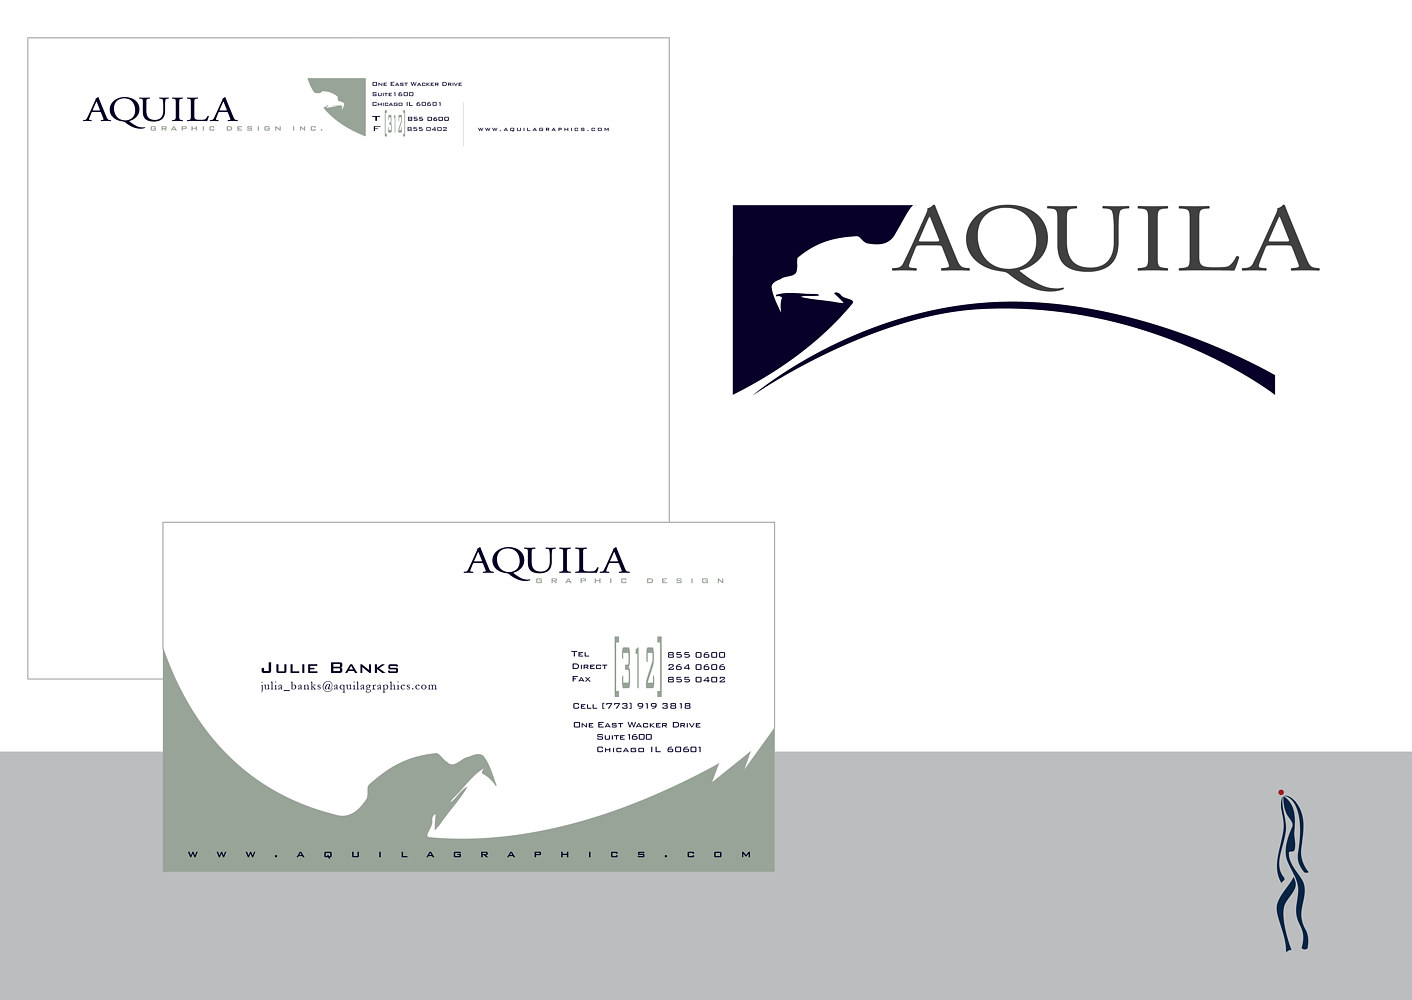 Aquila Graphic Design | Design Firm by Nathalie Gribinski